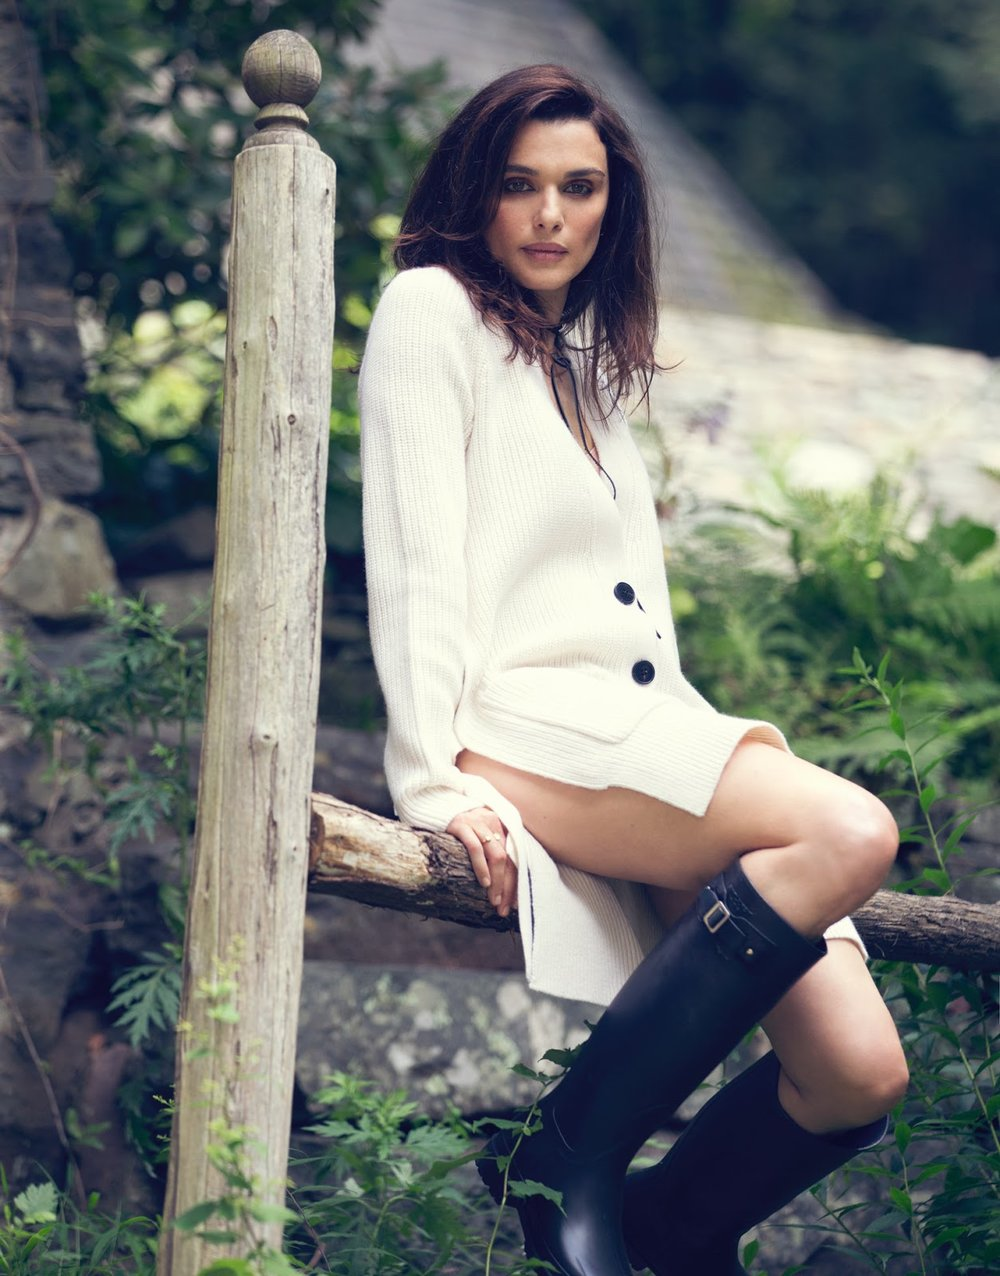 rachel-weisz-david-bellemere-The+edit+Aug+25th+-++(9)